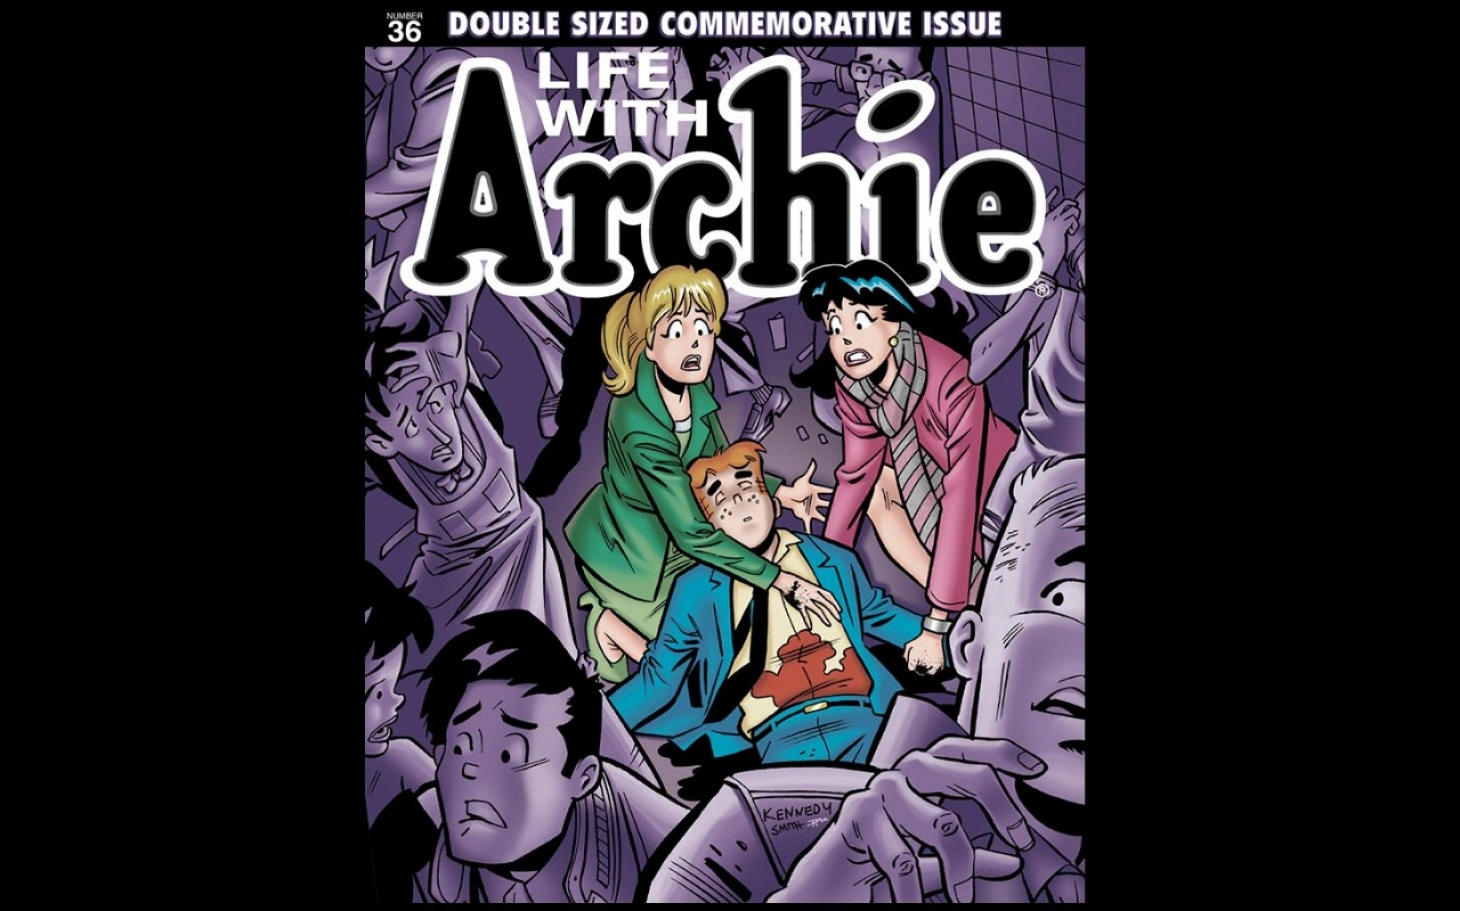 Adult archies image are